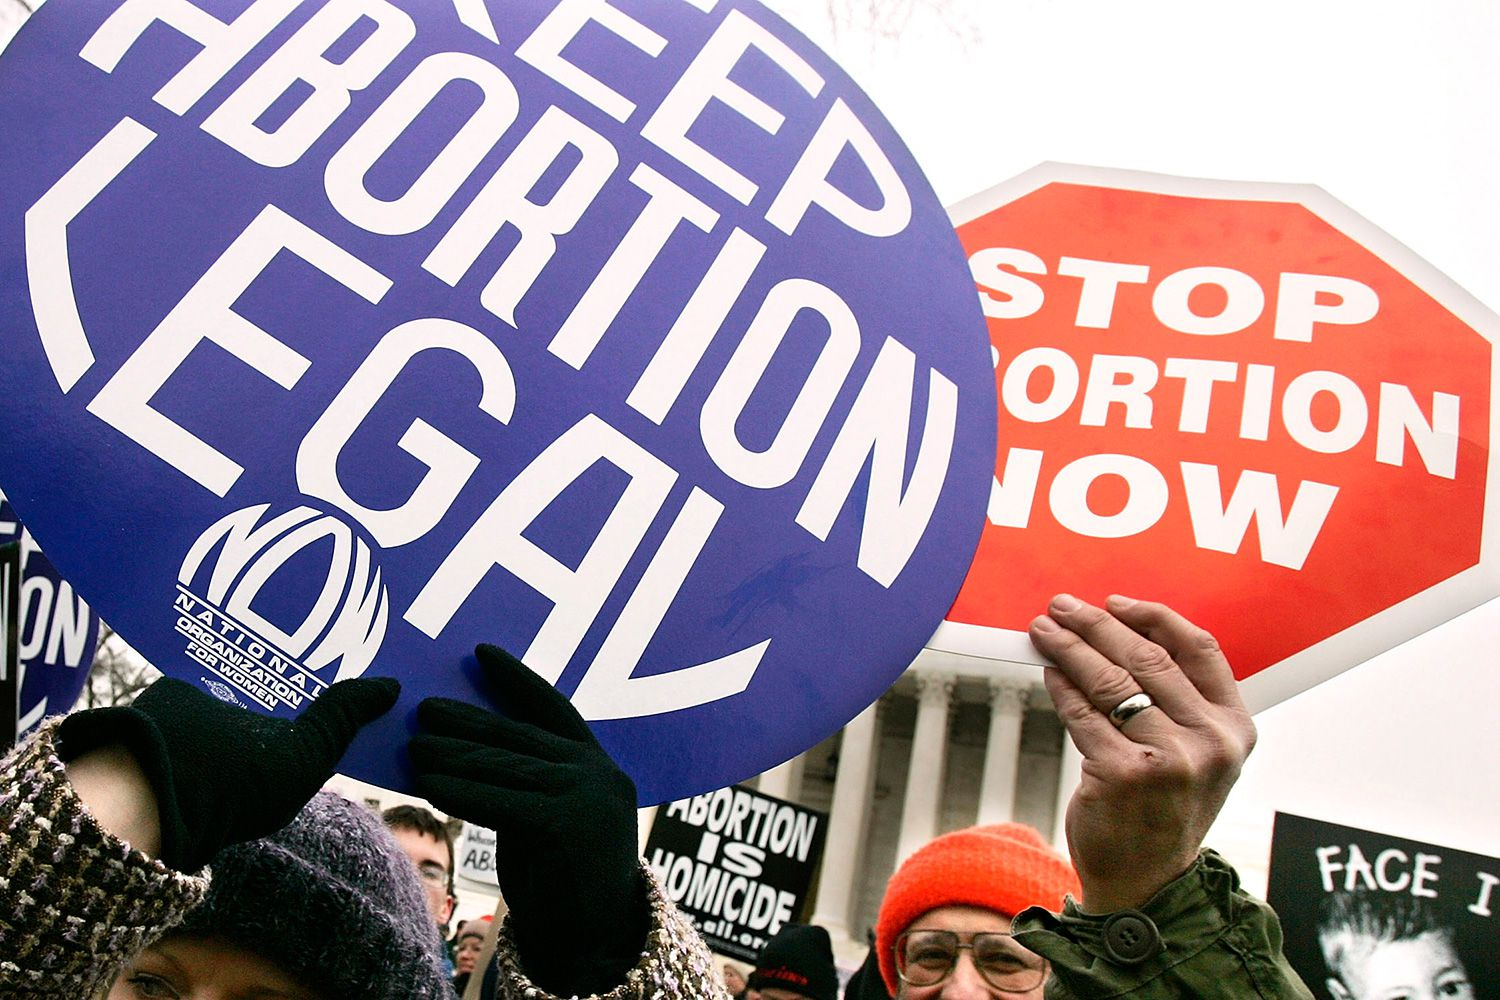 griswold v connecticut prelude to roe v wade what you need to know about the roe v wade decision